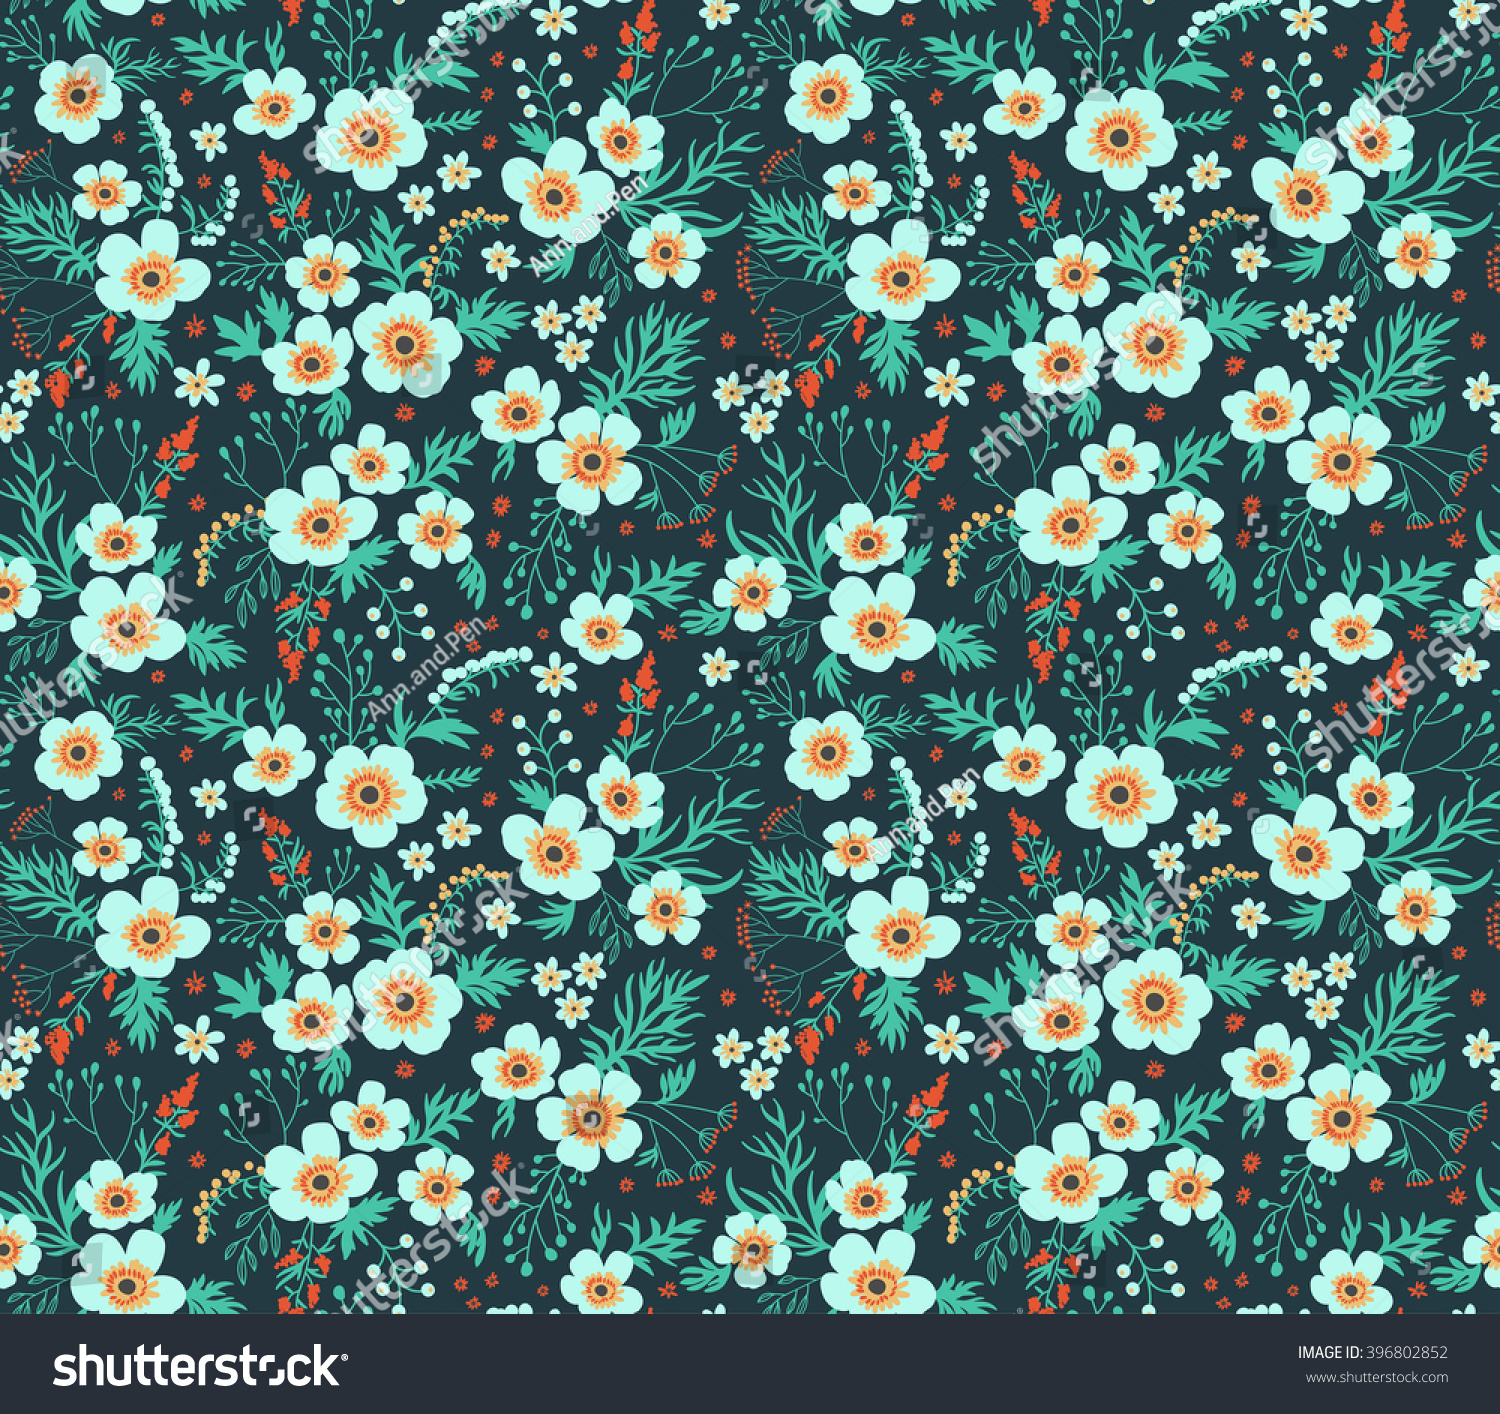 cute pattern in small flower small blue flowers dark